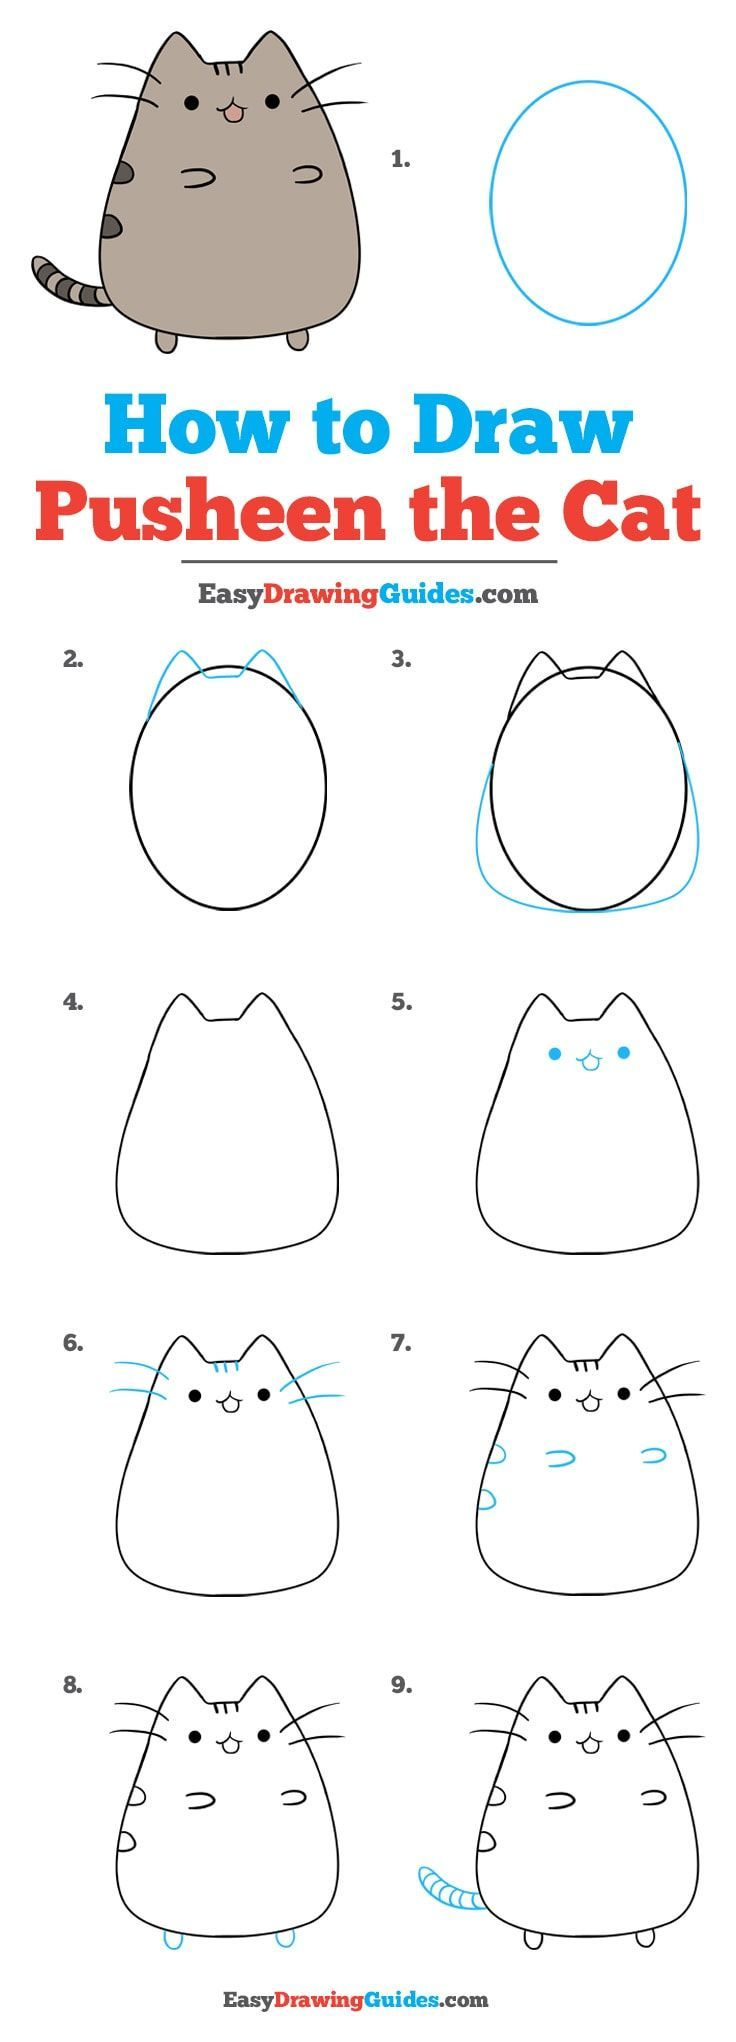 step by step instructions on how to draw a cat